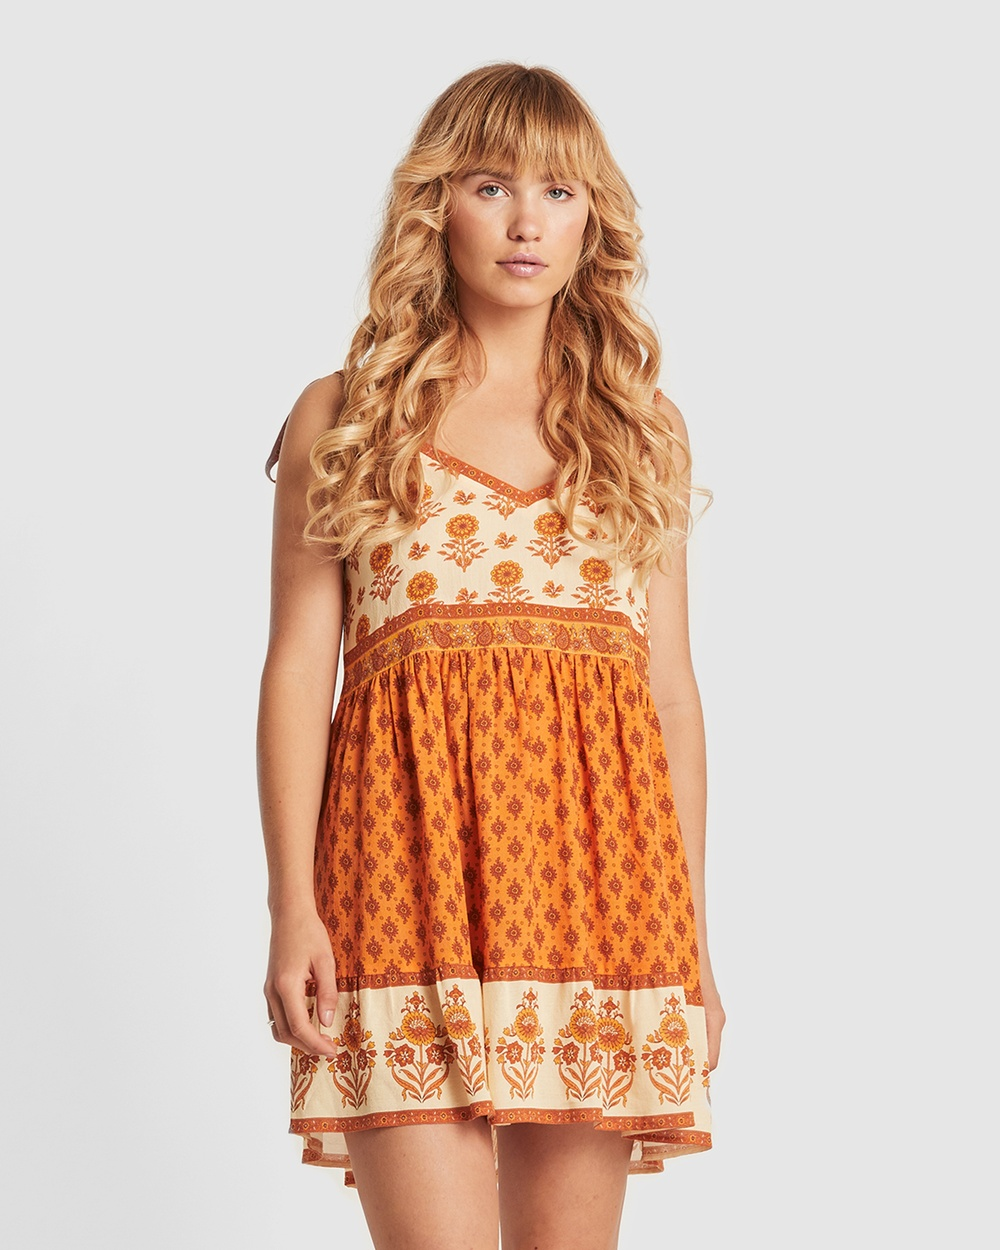 Arnhem Orange Soriah Marmalade Mini Dress